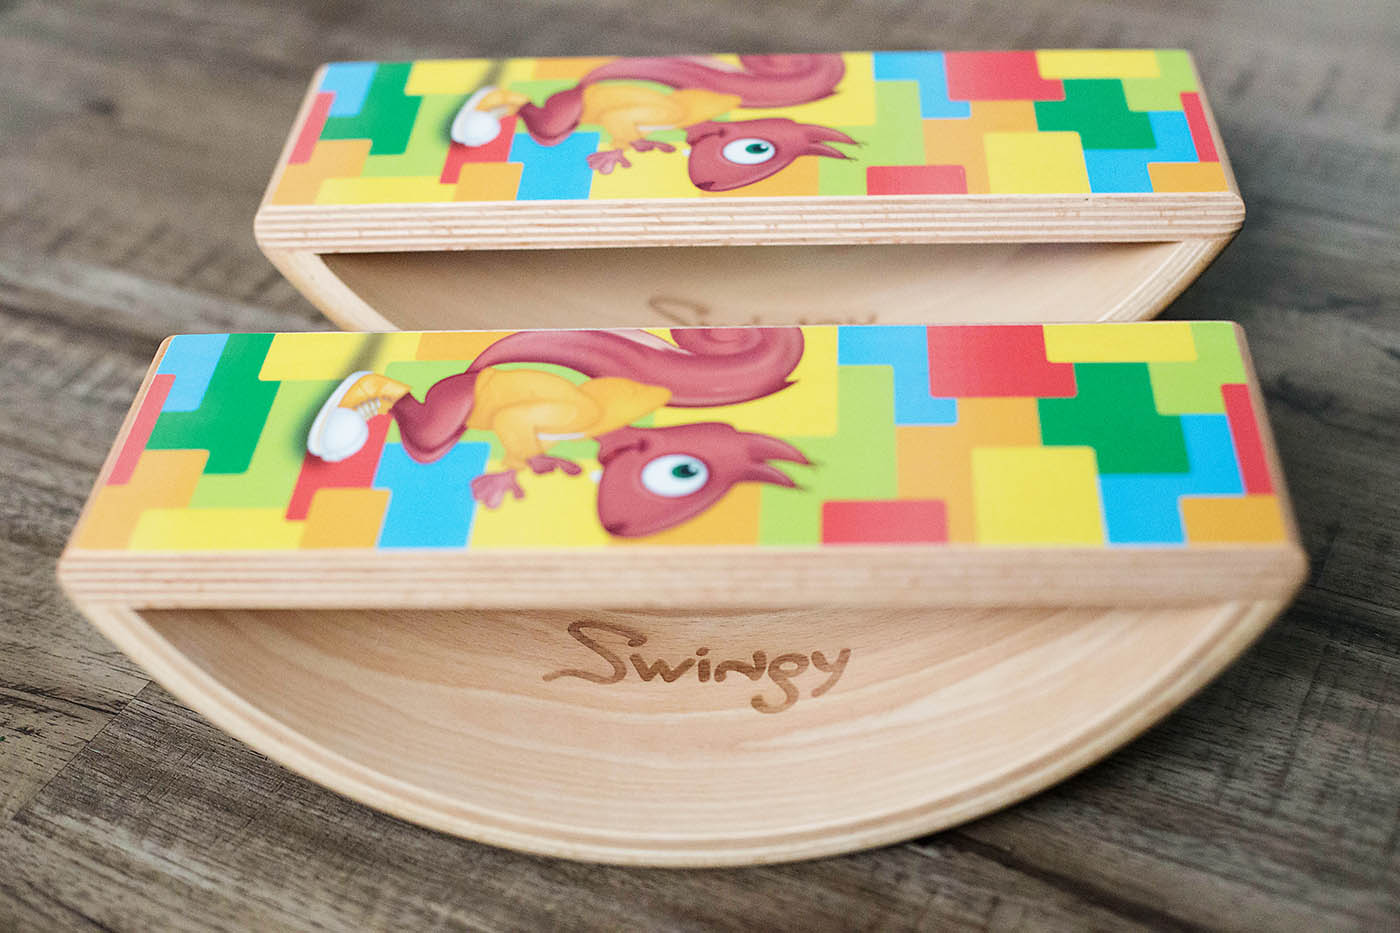 Swingy - digital game and balance board!